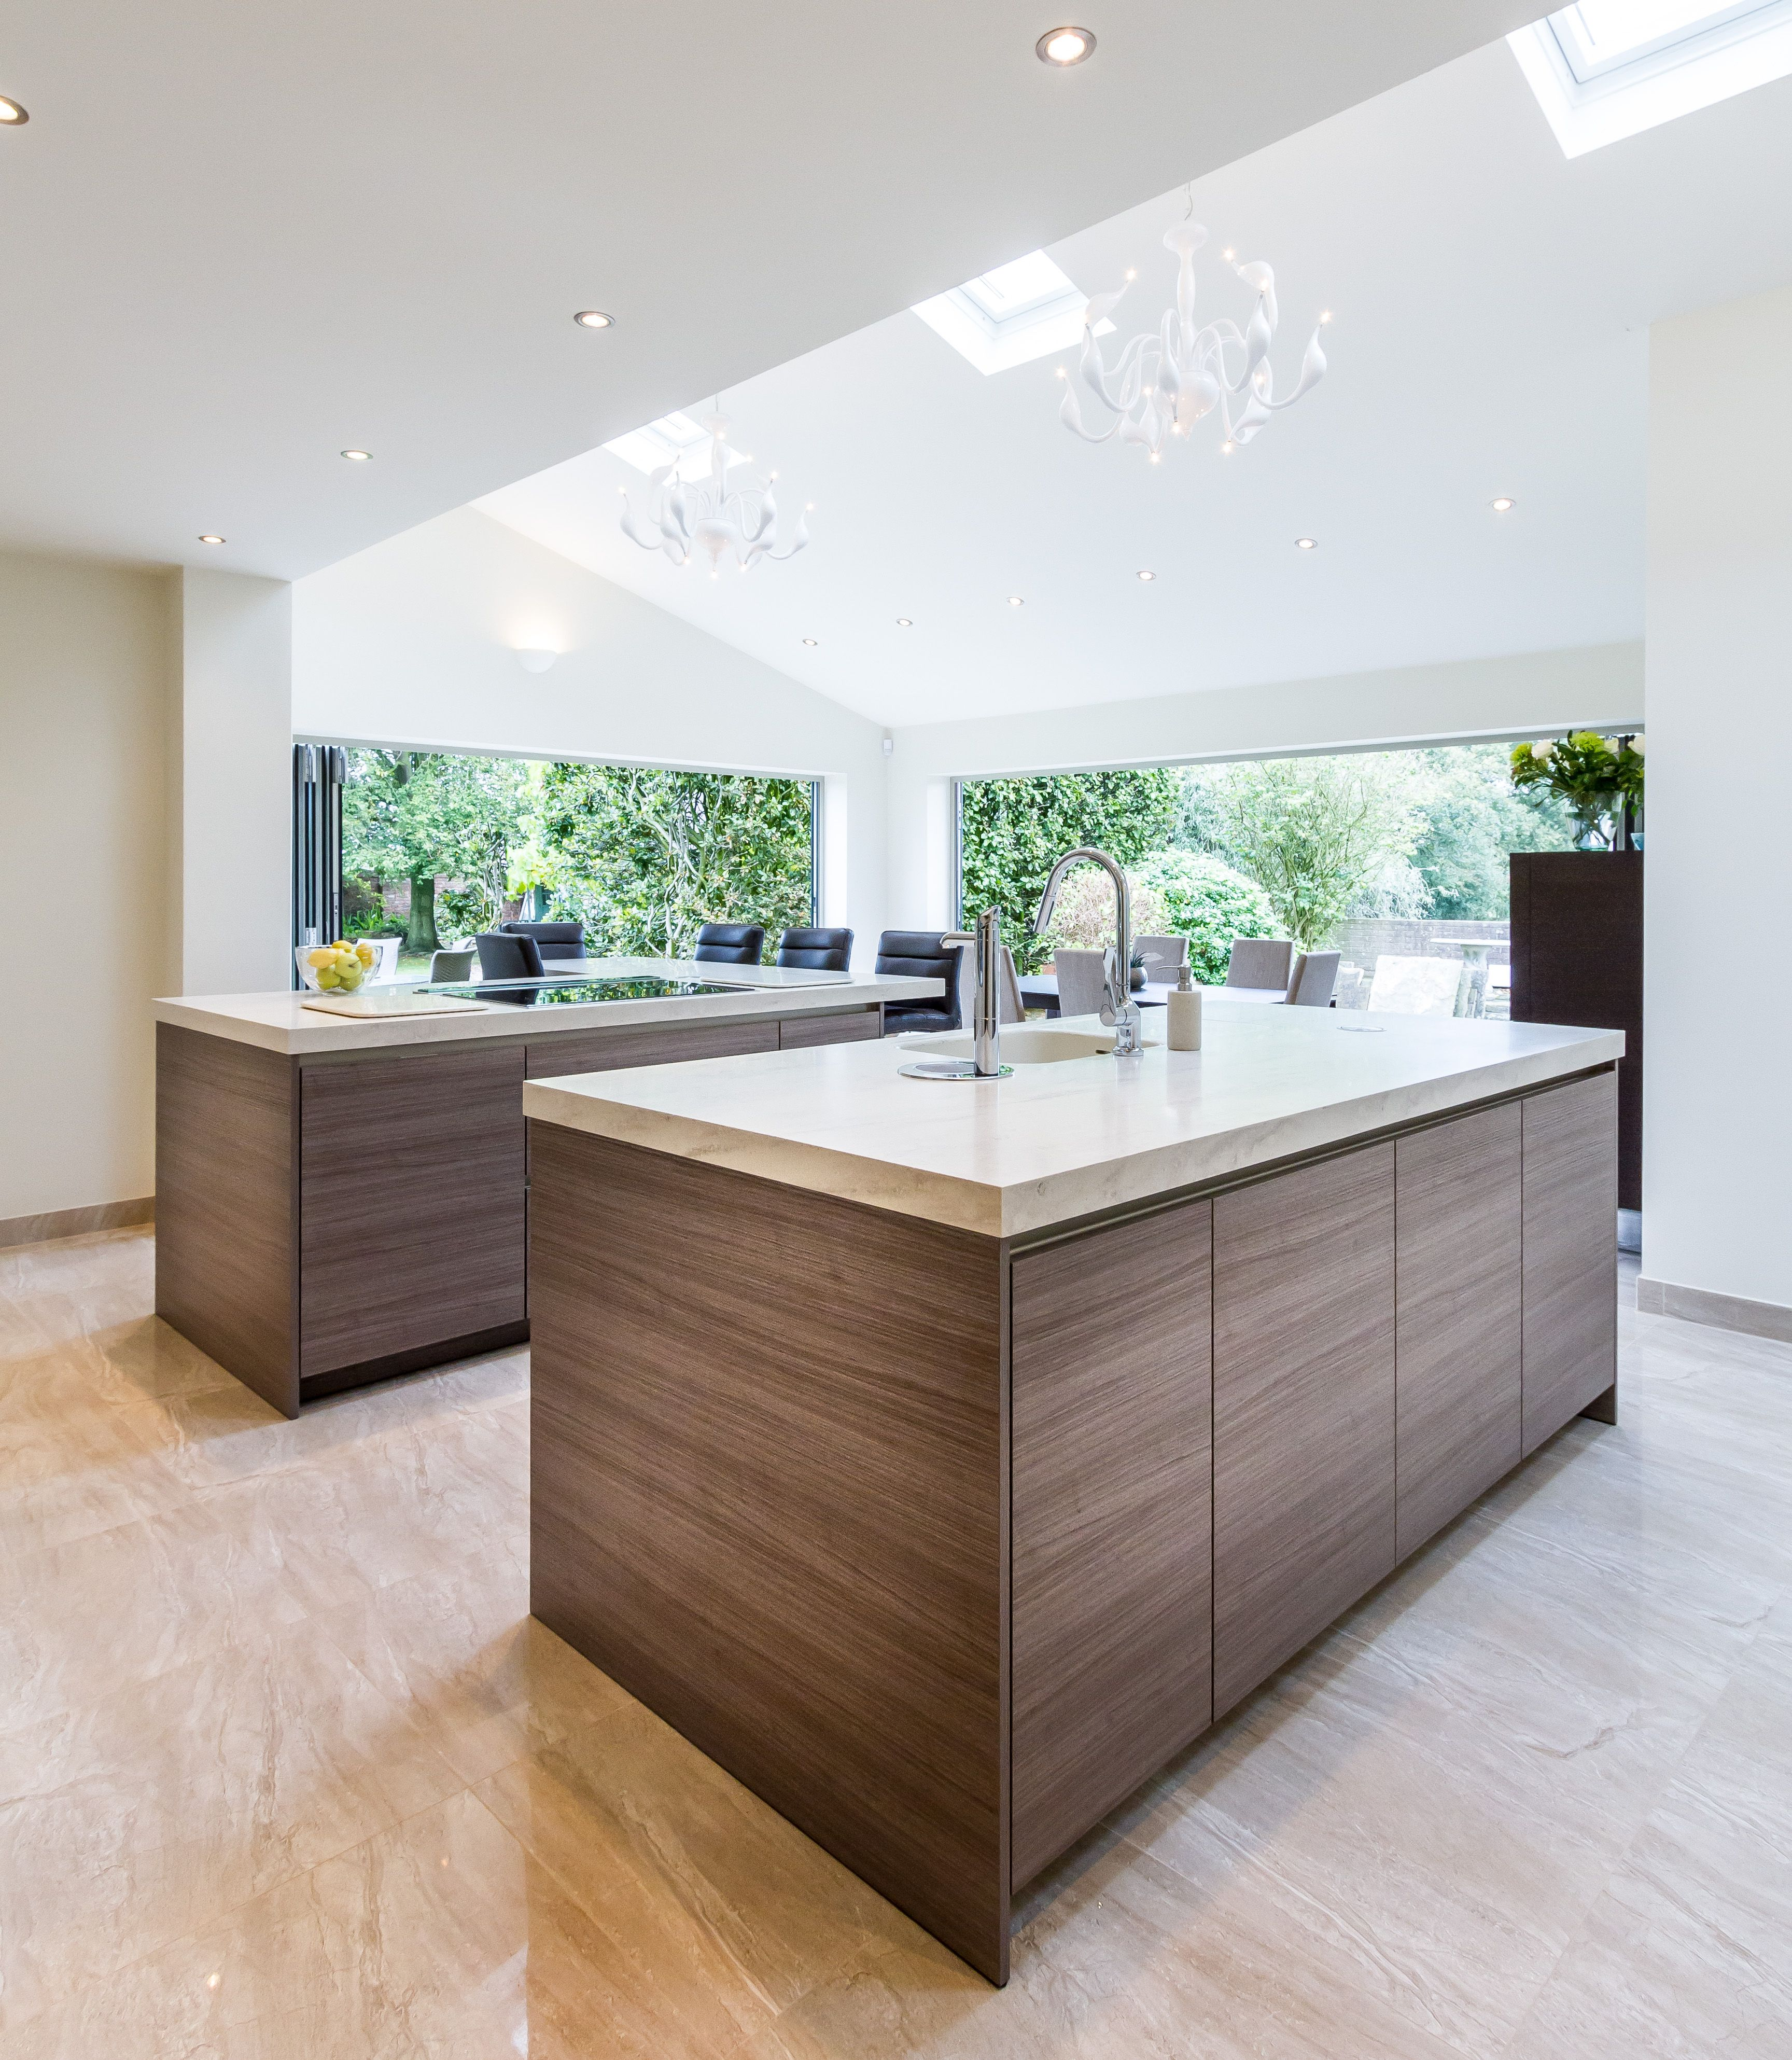 Two Sets Of Bi Folding Doors Compliments The Two Islands New Kitchen Kitchen Extension Bifold Doors